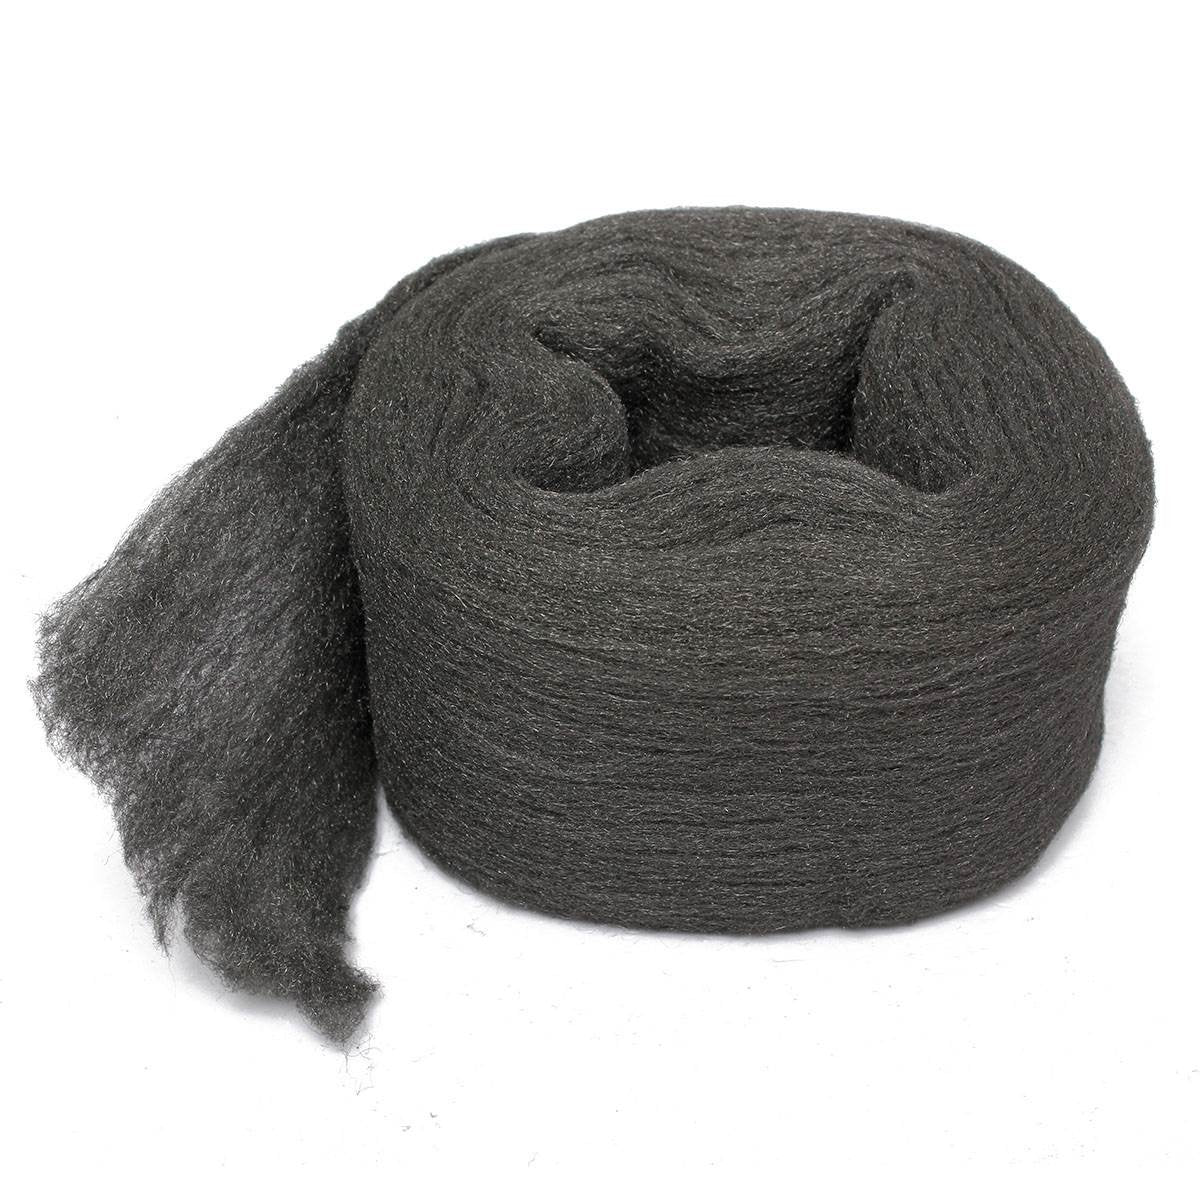 Steel Wire Wool Grade 0000 3.3 meter For Polishing Cleaning Removing Remover Non Crumble